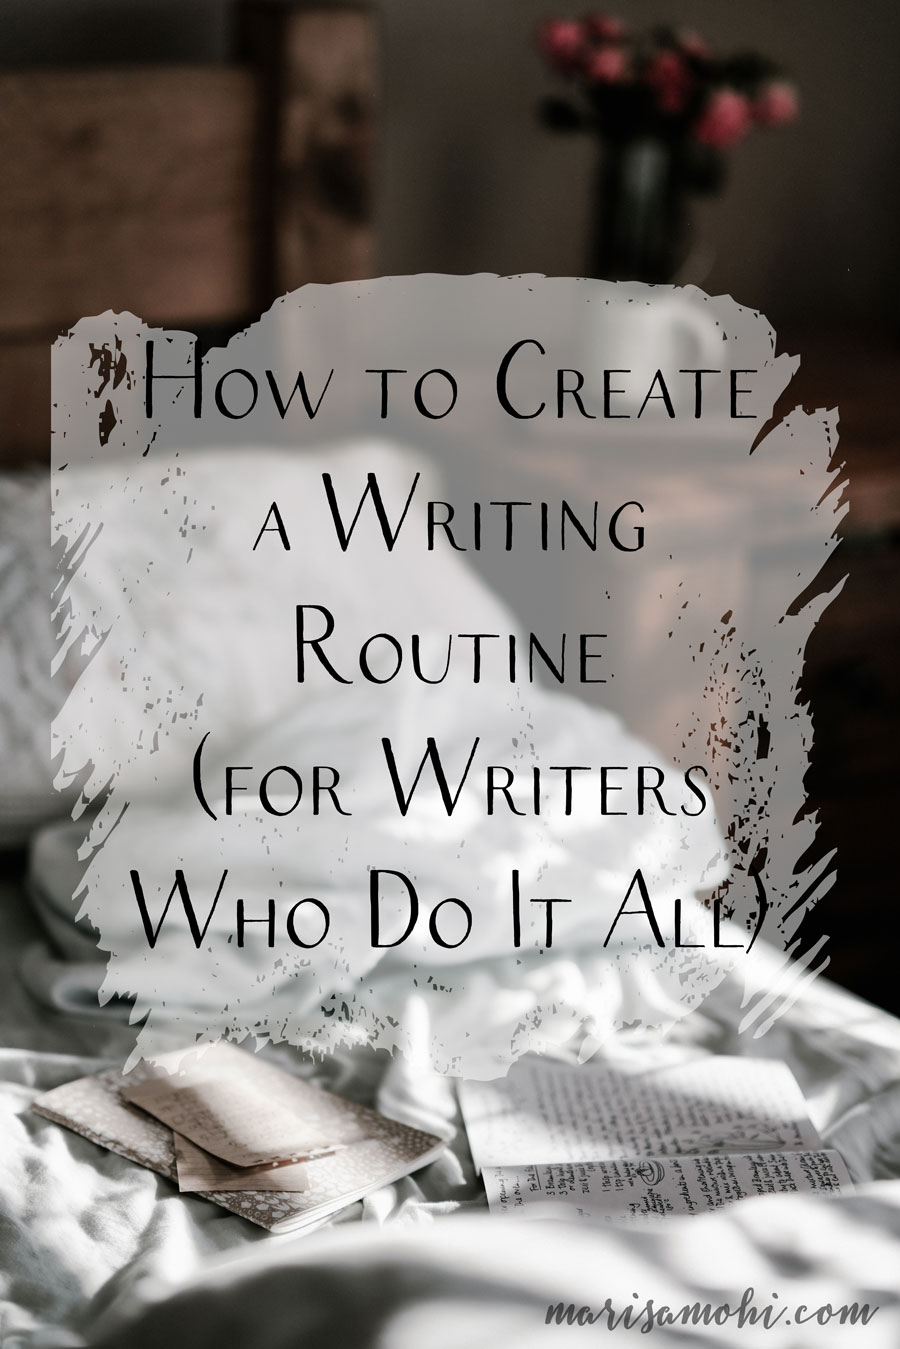 How to Create a Writing Routine (for Writers Who Do It All) | It can be difficult to create a writing routine, especially when you've got a day job and a side hustle and the demands of everyday life. But these tips on how to create a writing routine will help you find what works for you.